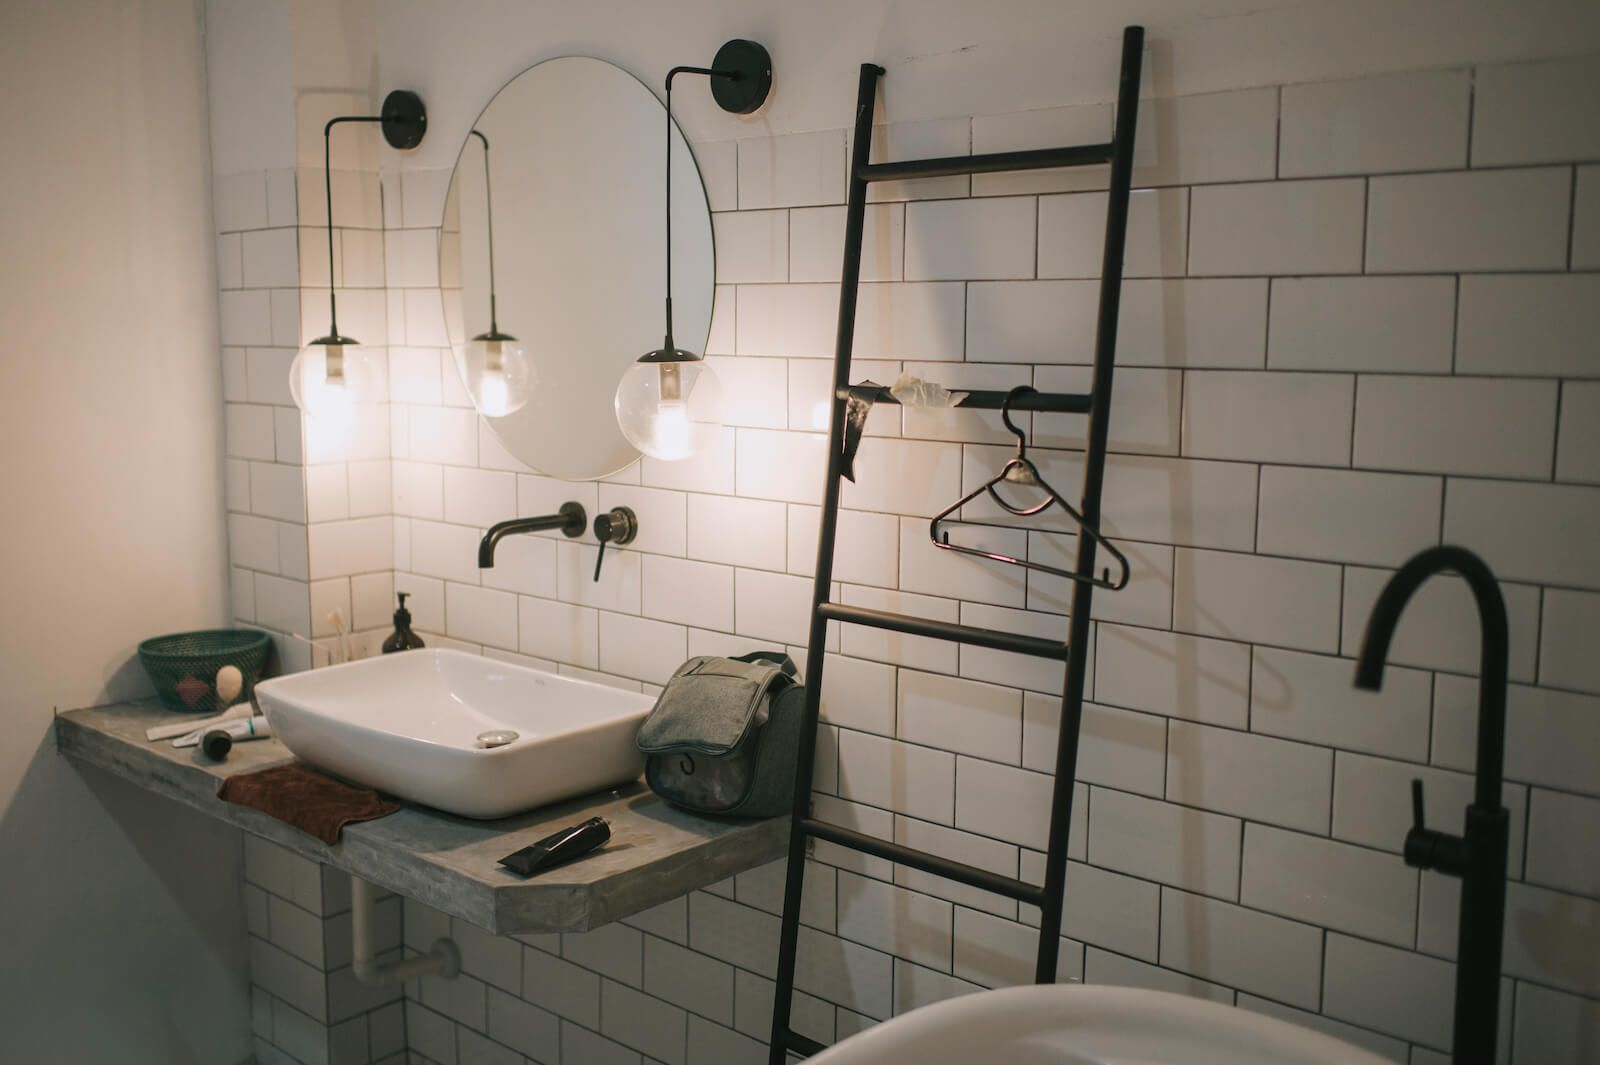 How to Choose the Right Metal for Bathroom Fittings